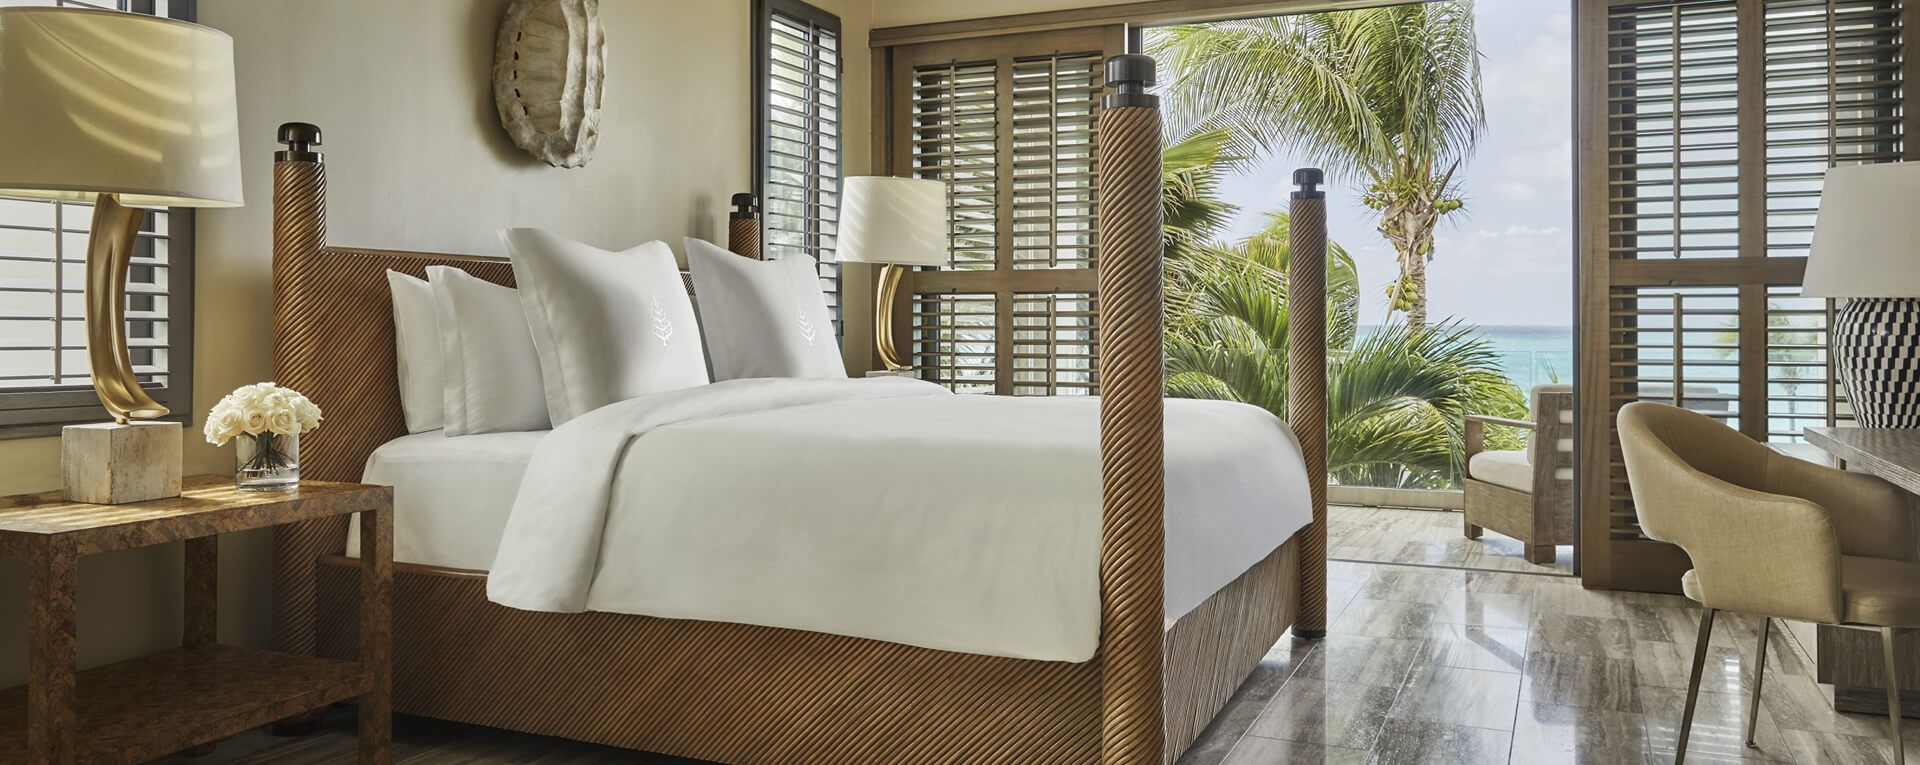 Four Seasons Resorts & Residences Anguilla